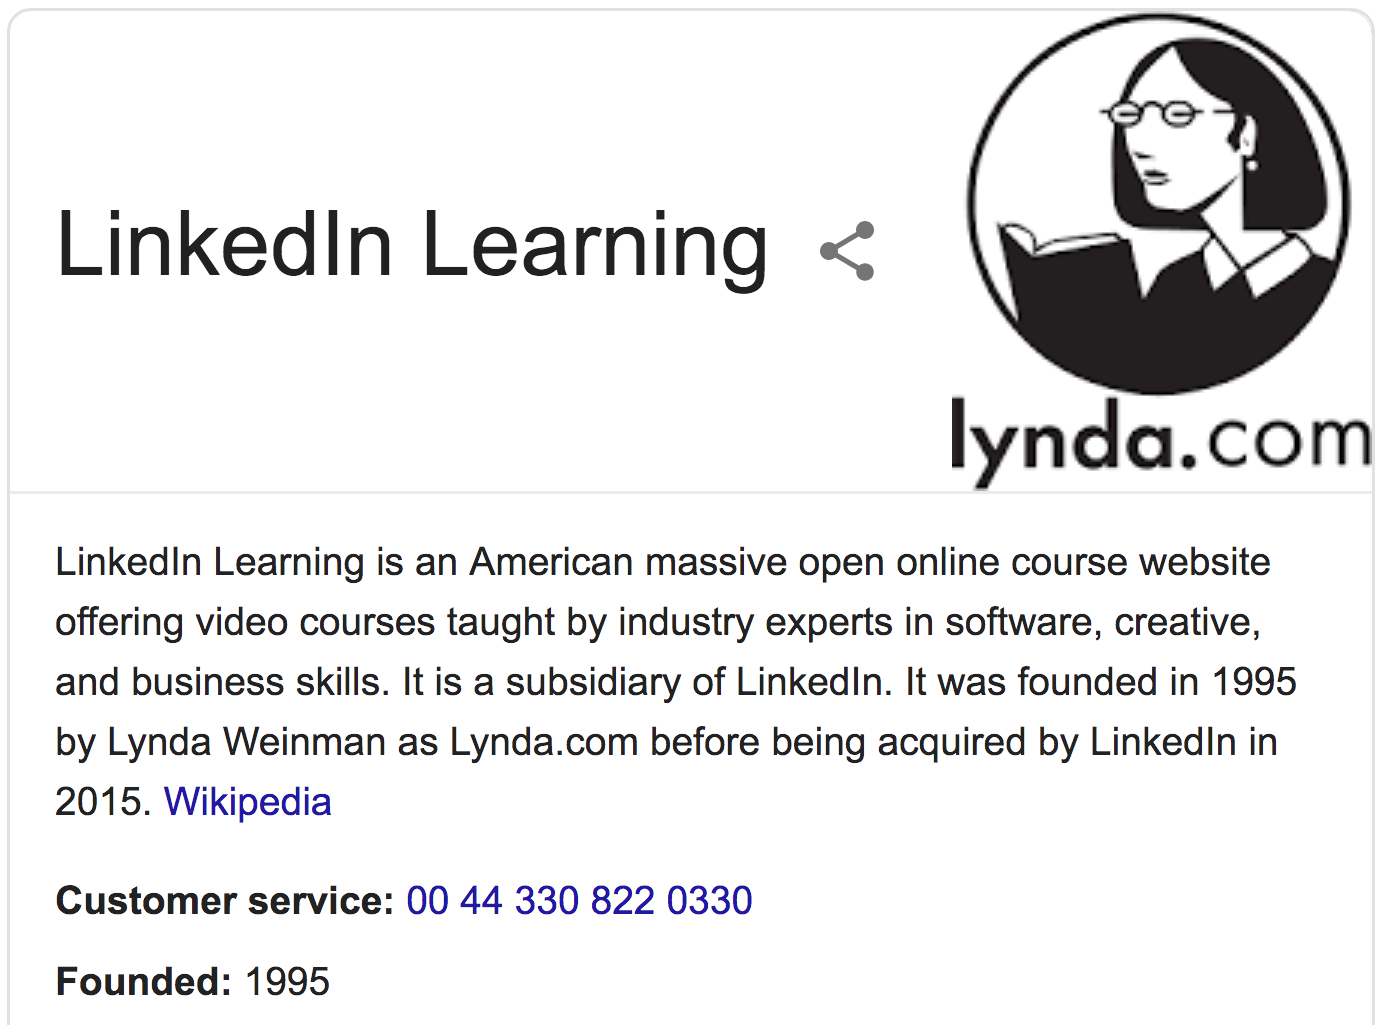 LinkedIn Learning Acquires Lynda.com